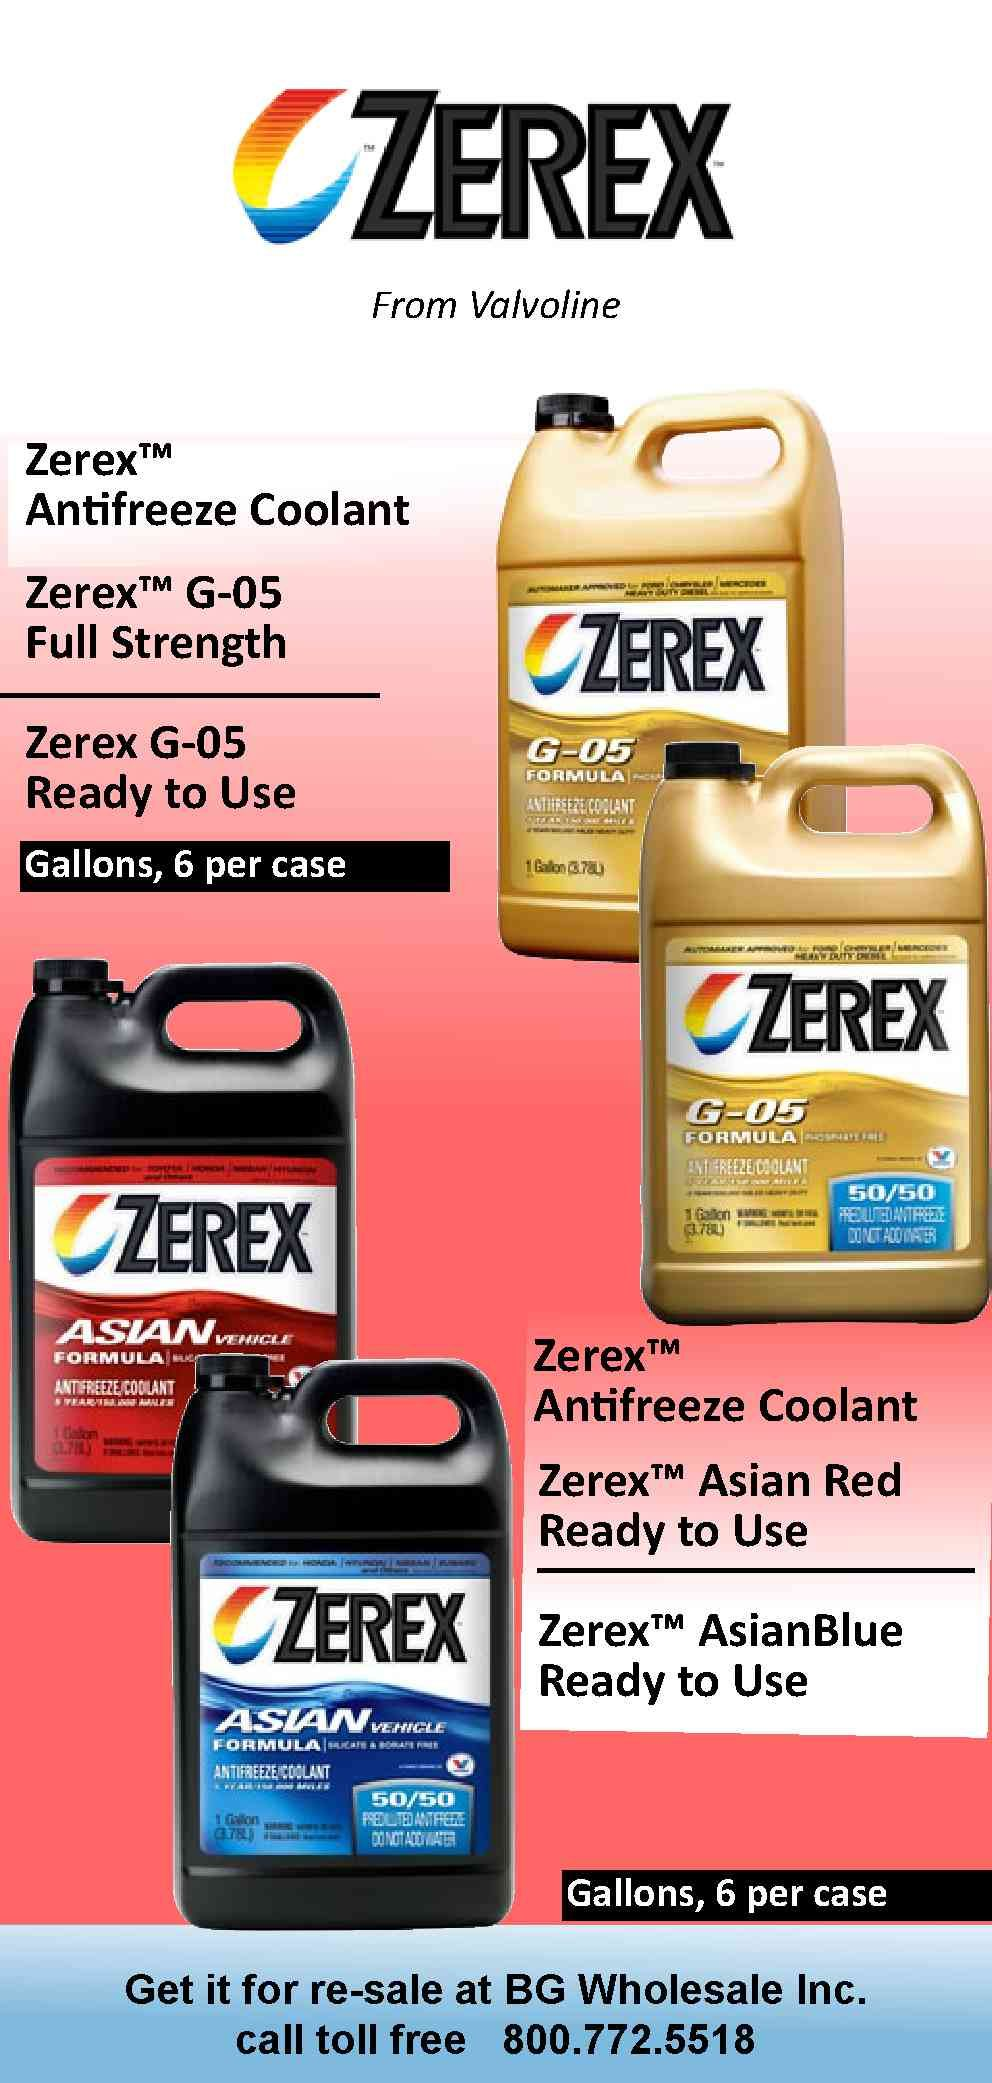 Zerex Antifreeze by Valvoline  G-05 full strength, and 50/50